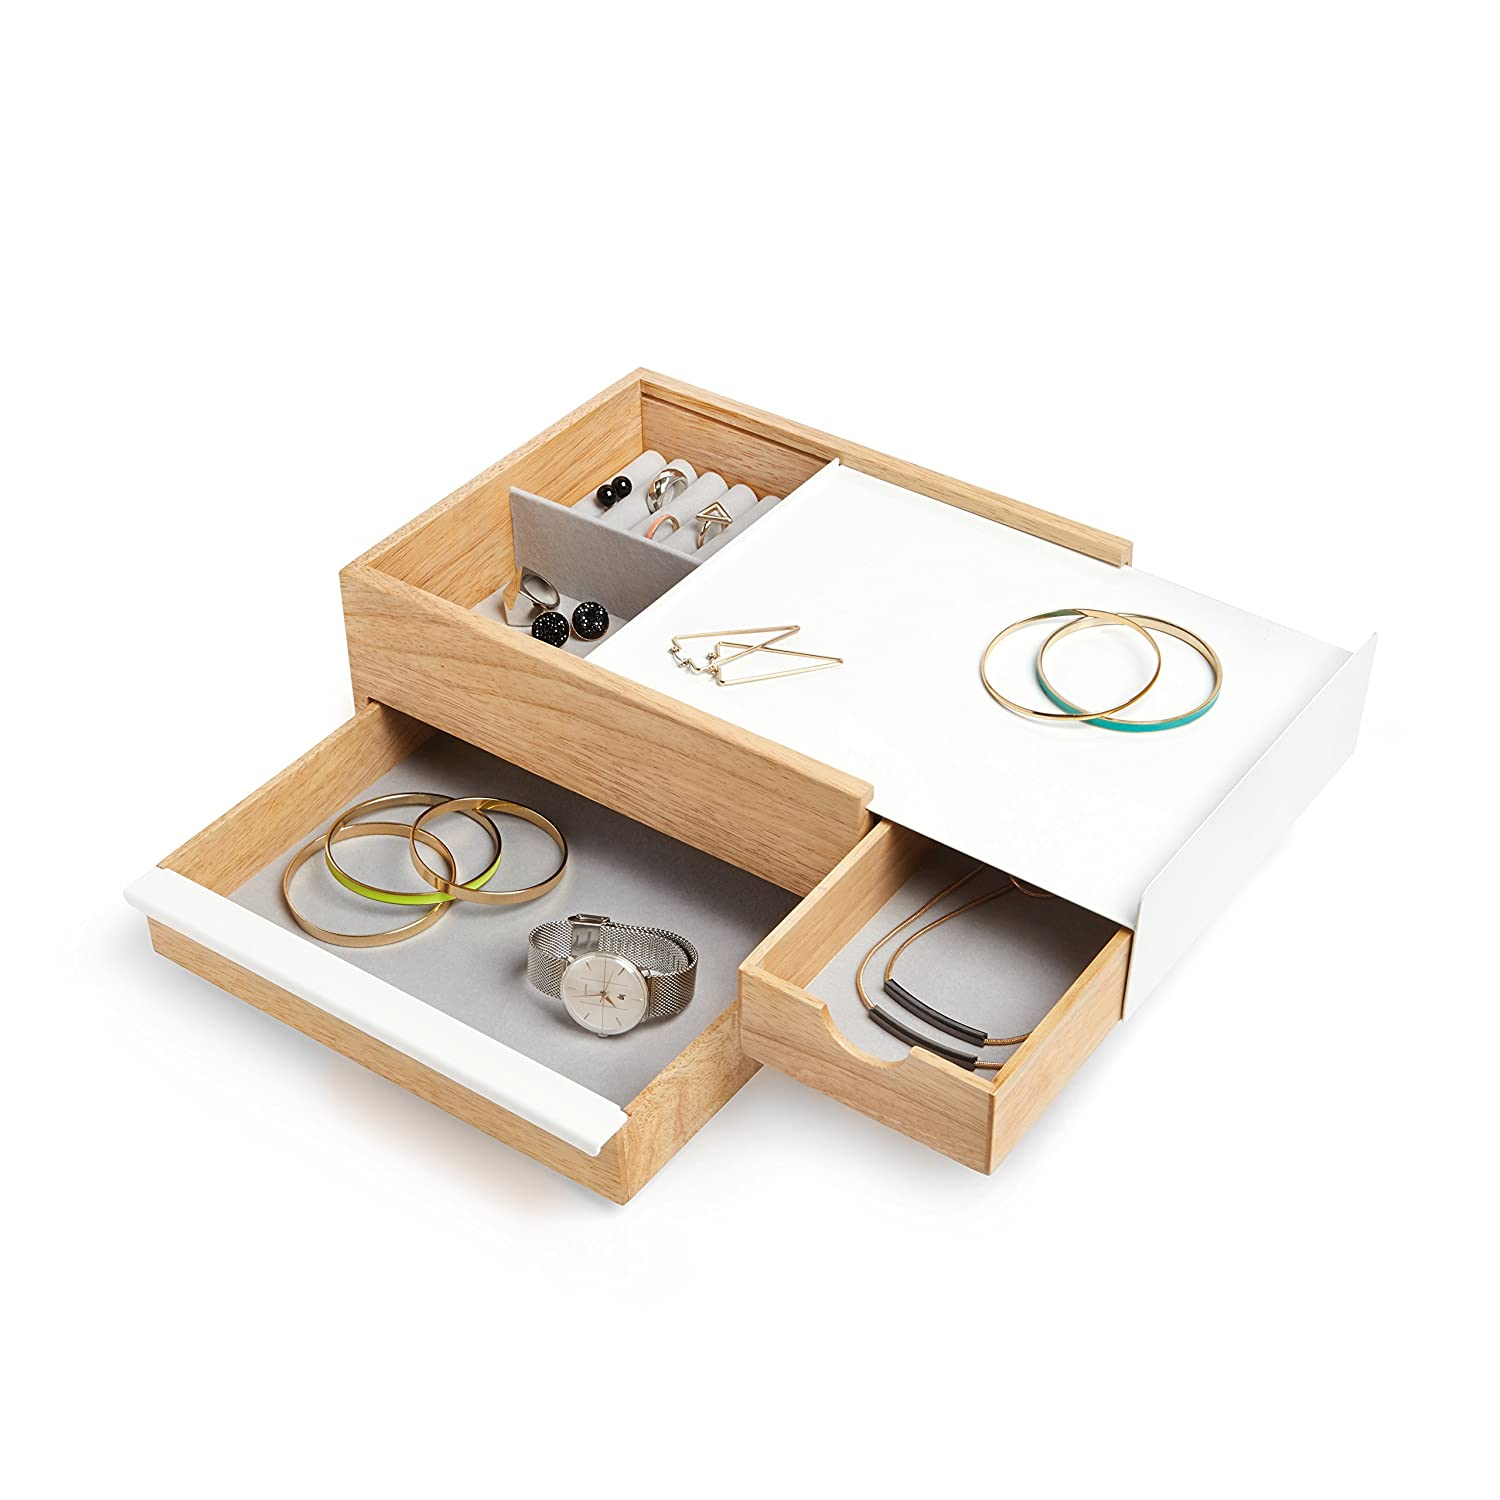 Umbra Stowit Jewelry Box - Modern Keepsake Storage Organizer with Hidden  Compartment Drawers for Ring,